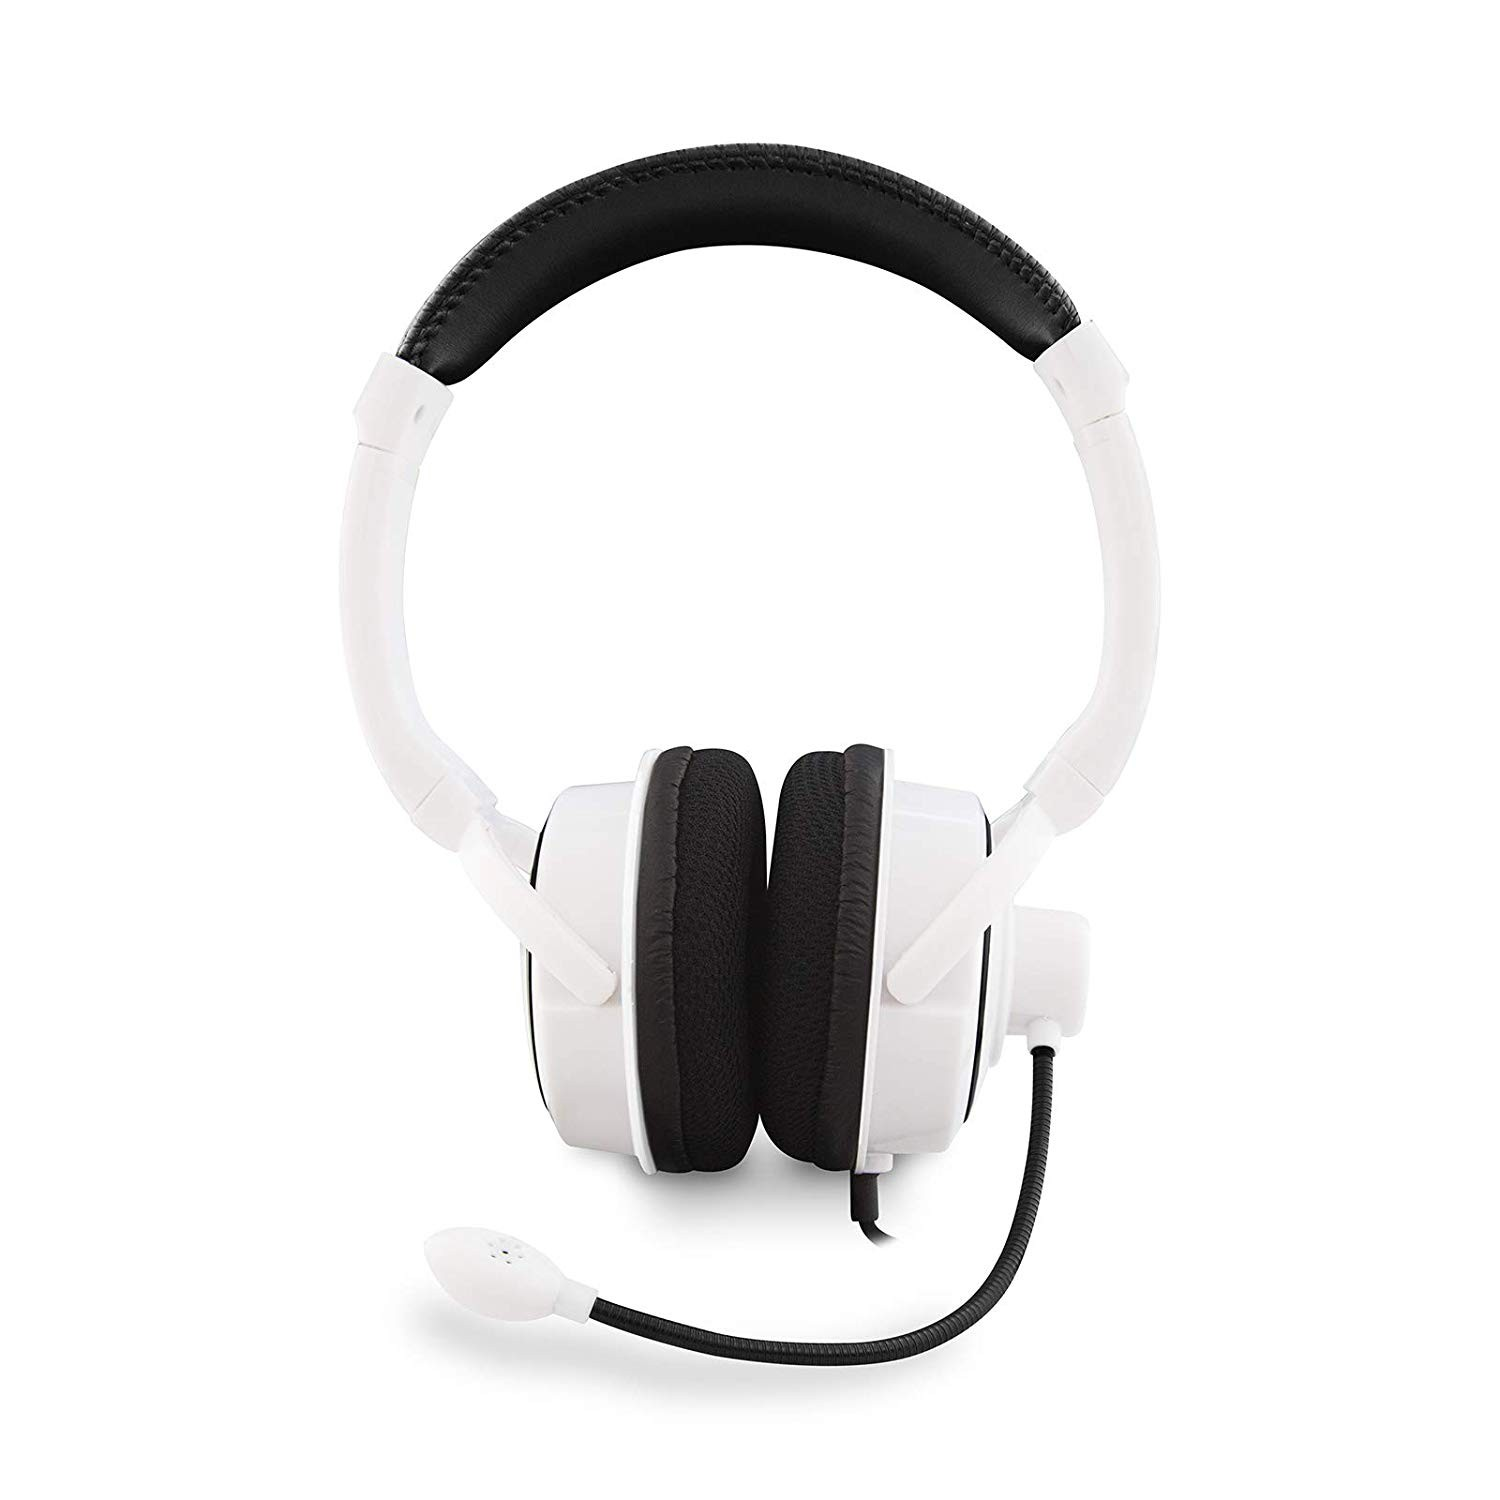 4Gamers PRO4-40 stereo gaming headset white| 3.5mm